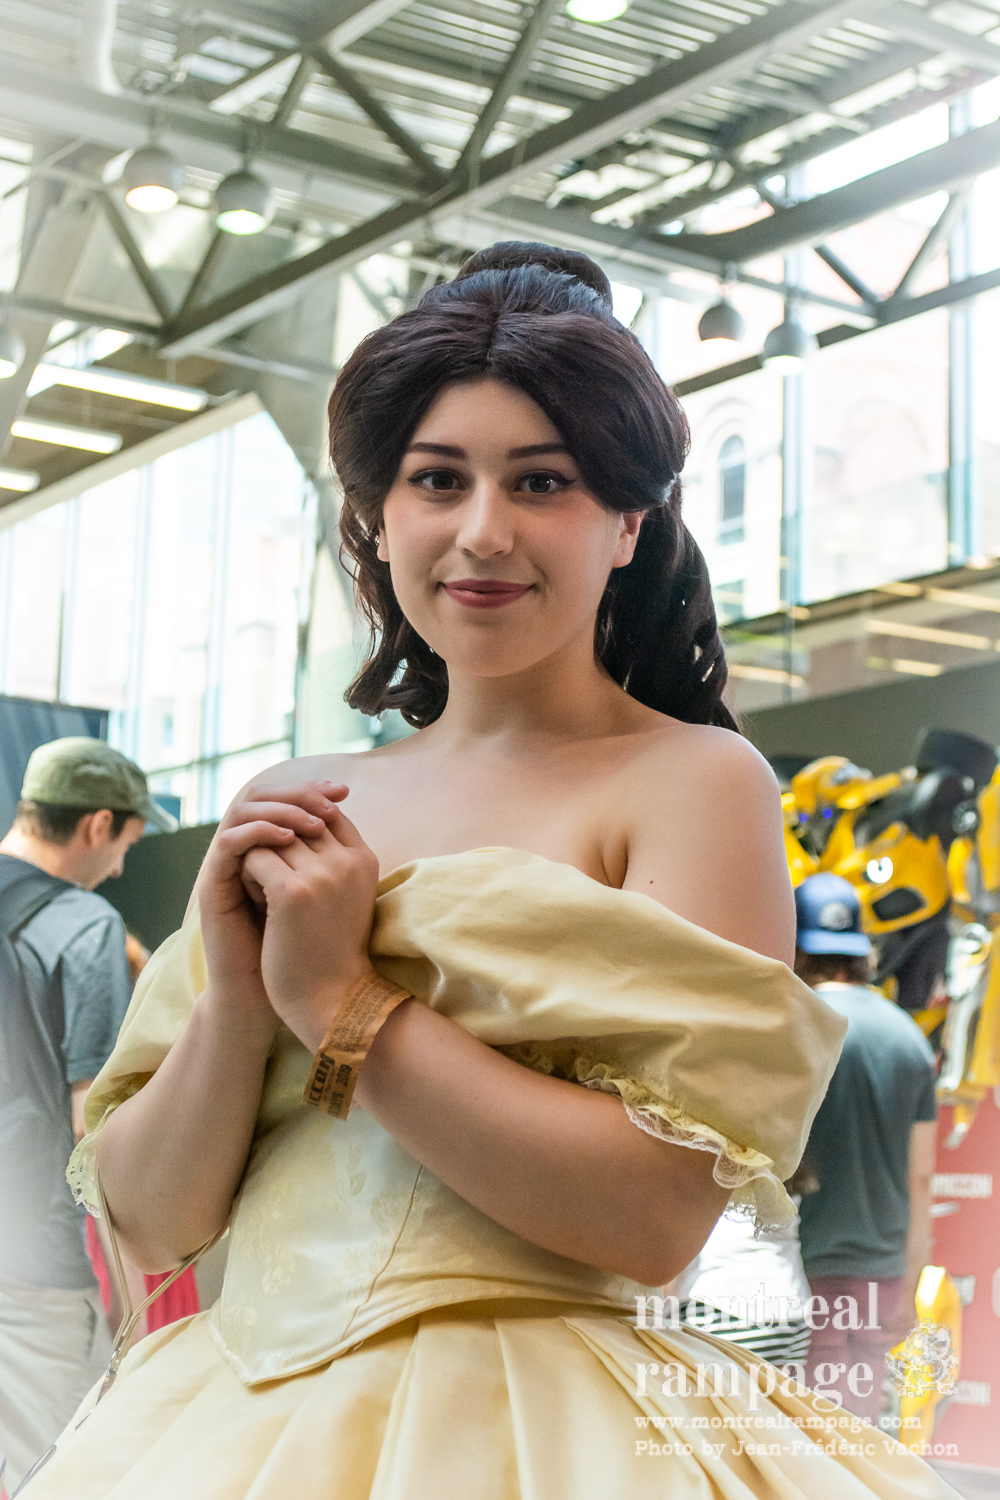 Montreal-Comiccon-July-06-2019-095